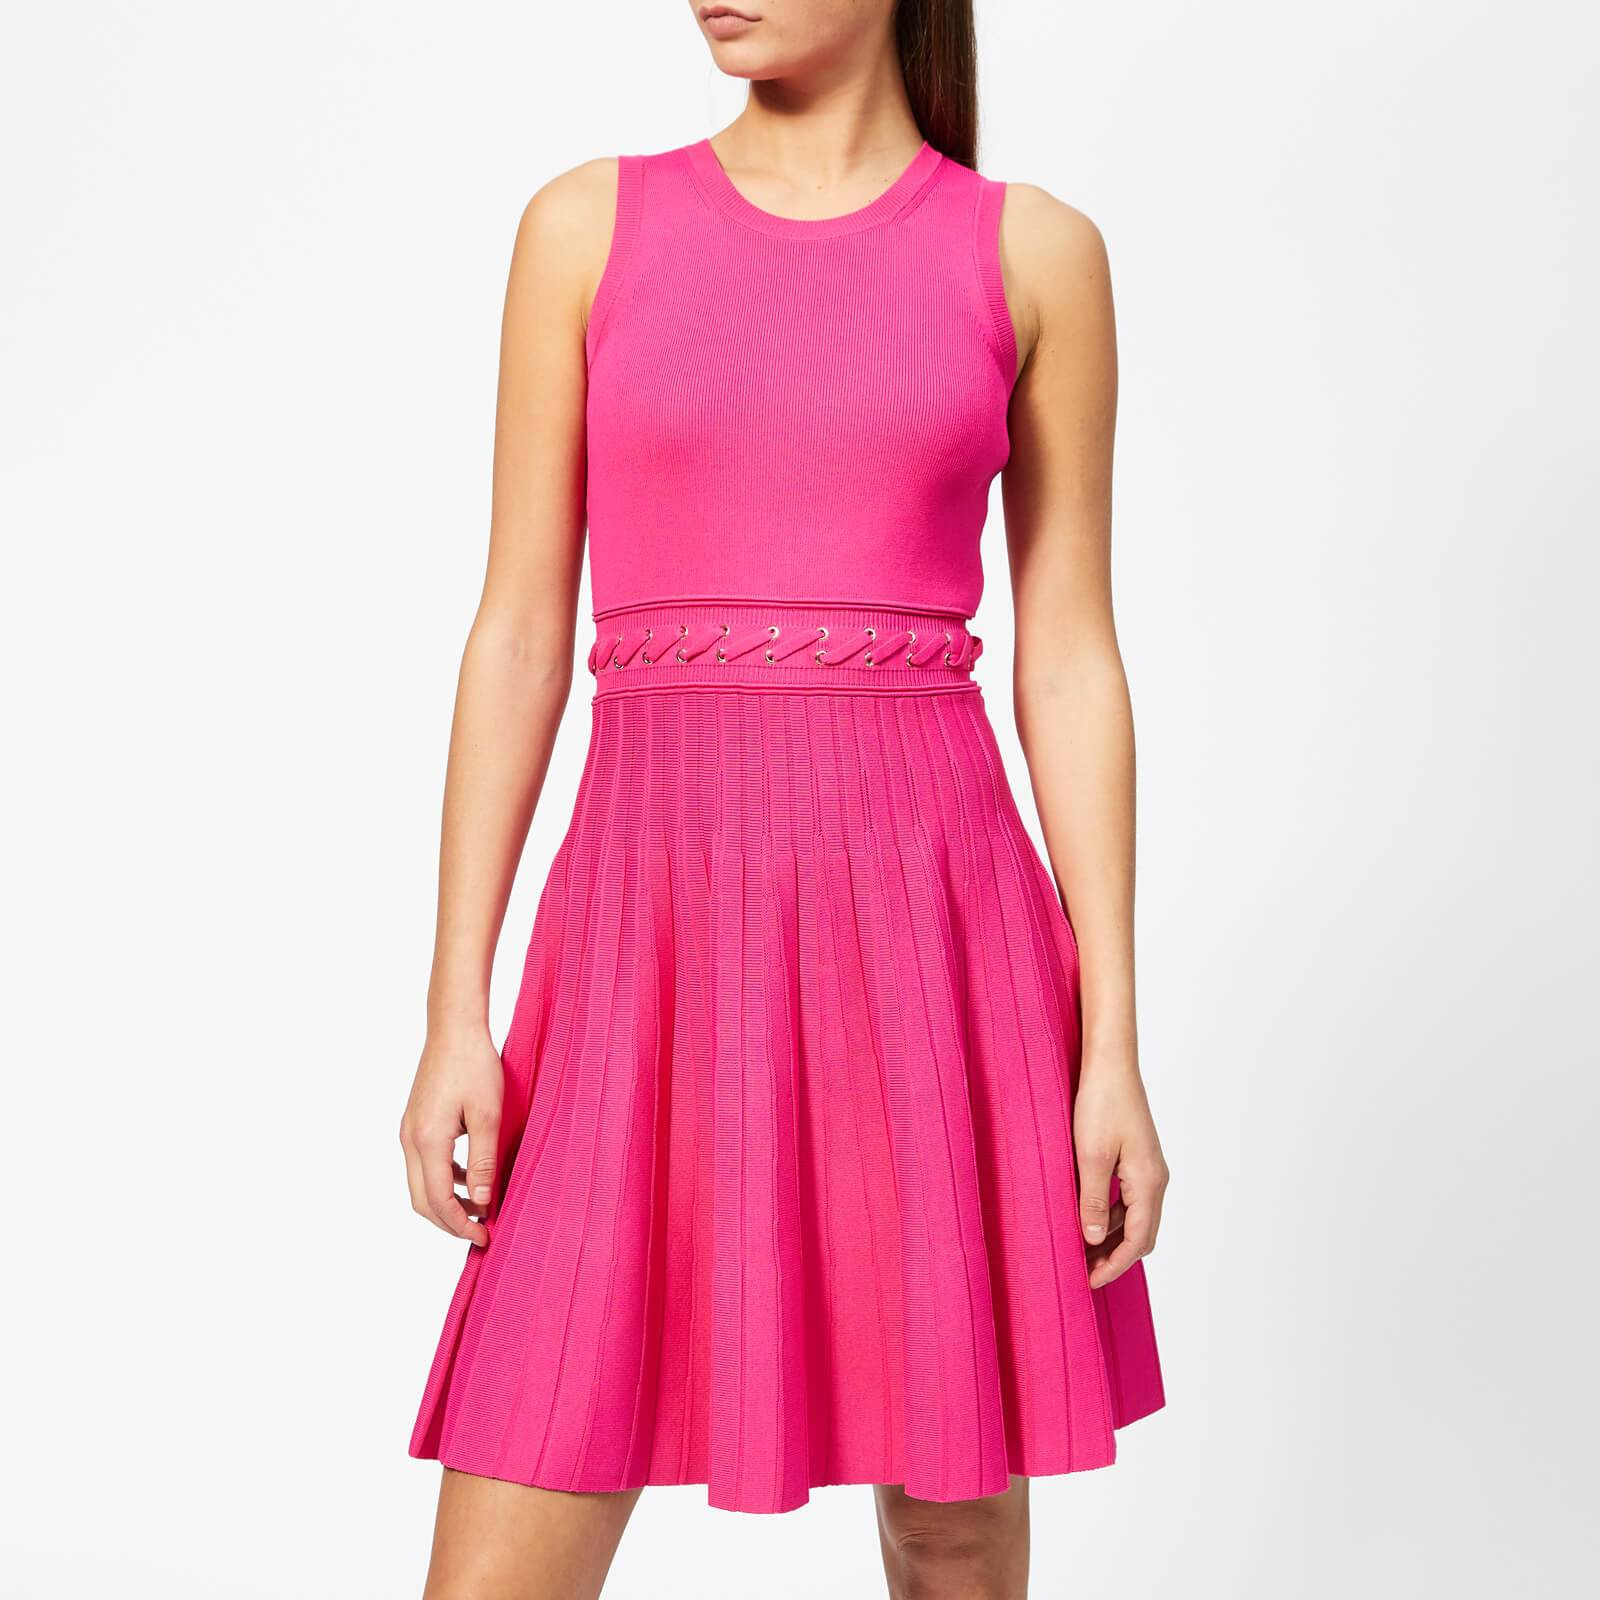 MICHAEL MICHAEL KORS Women's Grommit Lace And Crew Dress - Electric Pink - S - Pink